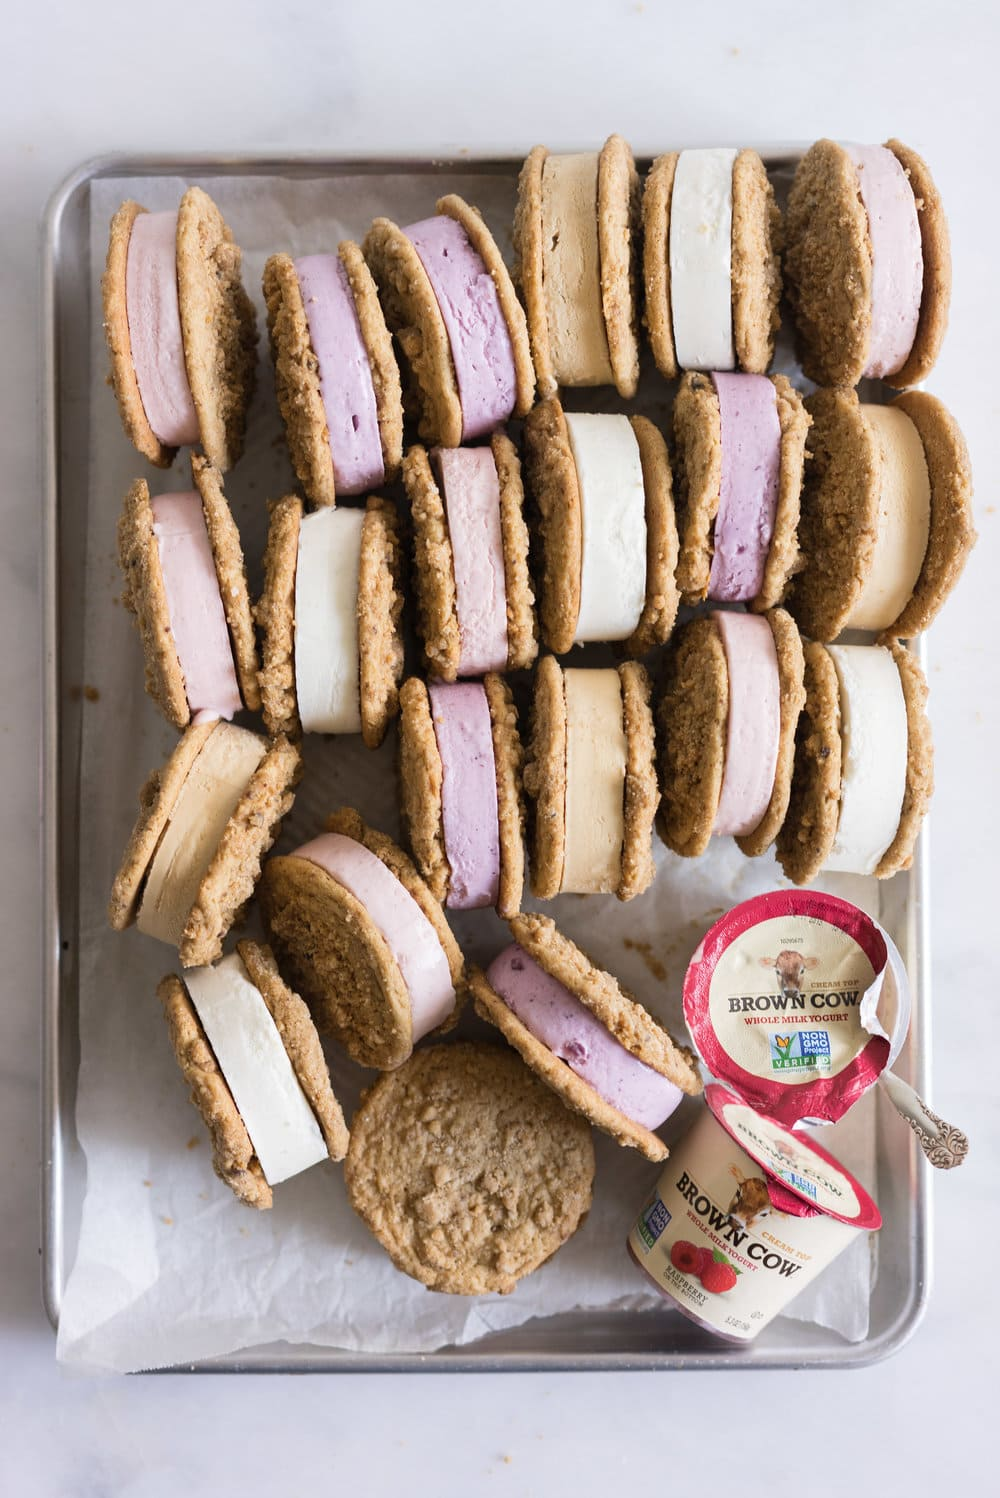 Frozen Yogurt Cookie Sandwiches with Brown Butter Streusel cookies from Cloudy Kitchen. Streusel Cookies sandwich a creamy, dreamy frozen yogurt, which is incredibly easy to whip up, and requires no straining of the yogurt! #frozenyogurt #frozenyoghurt #cookiesandwich